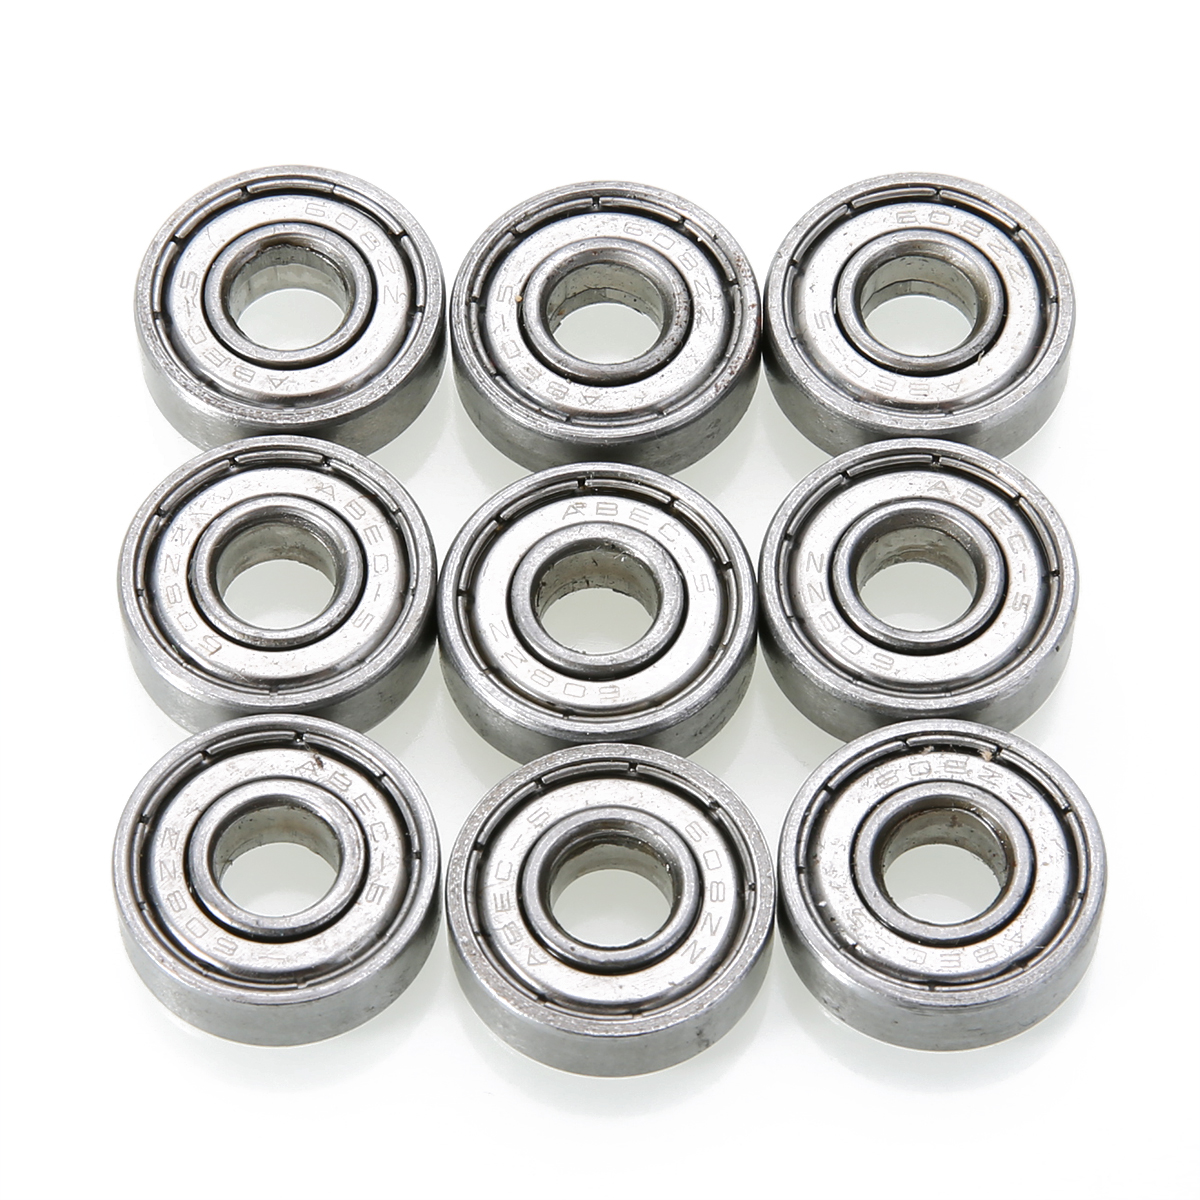 XiKe 10 Pcs 627ZZ Double Metal Seal Bearings 7x22x7mm Deep Groove Ball Bearings. Pre-Lubricated and Stable Performance and Cost Effective